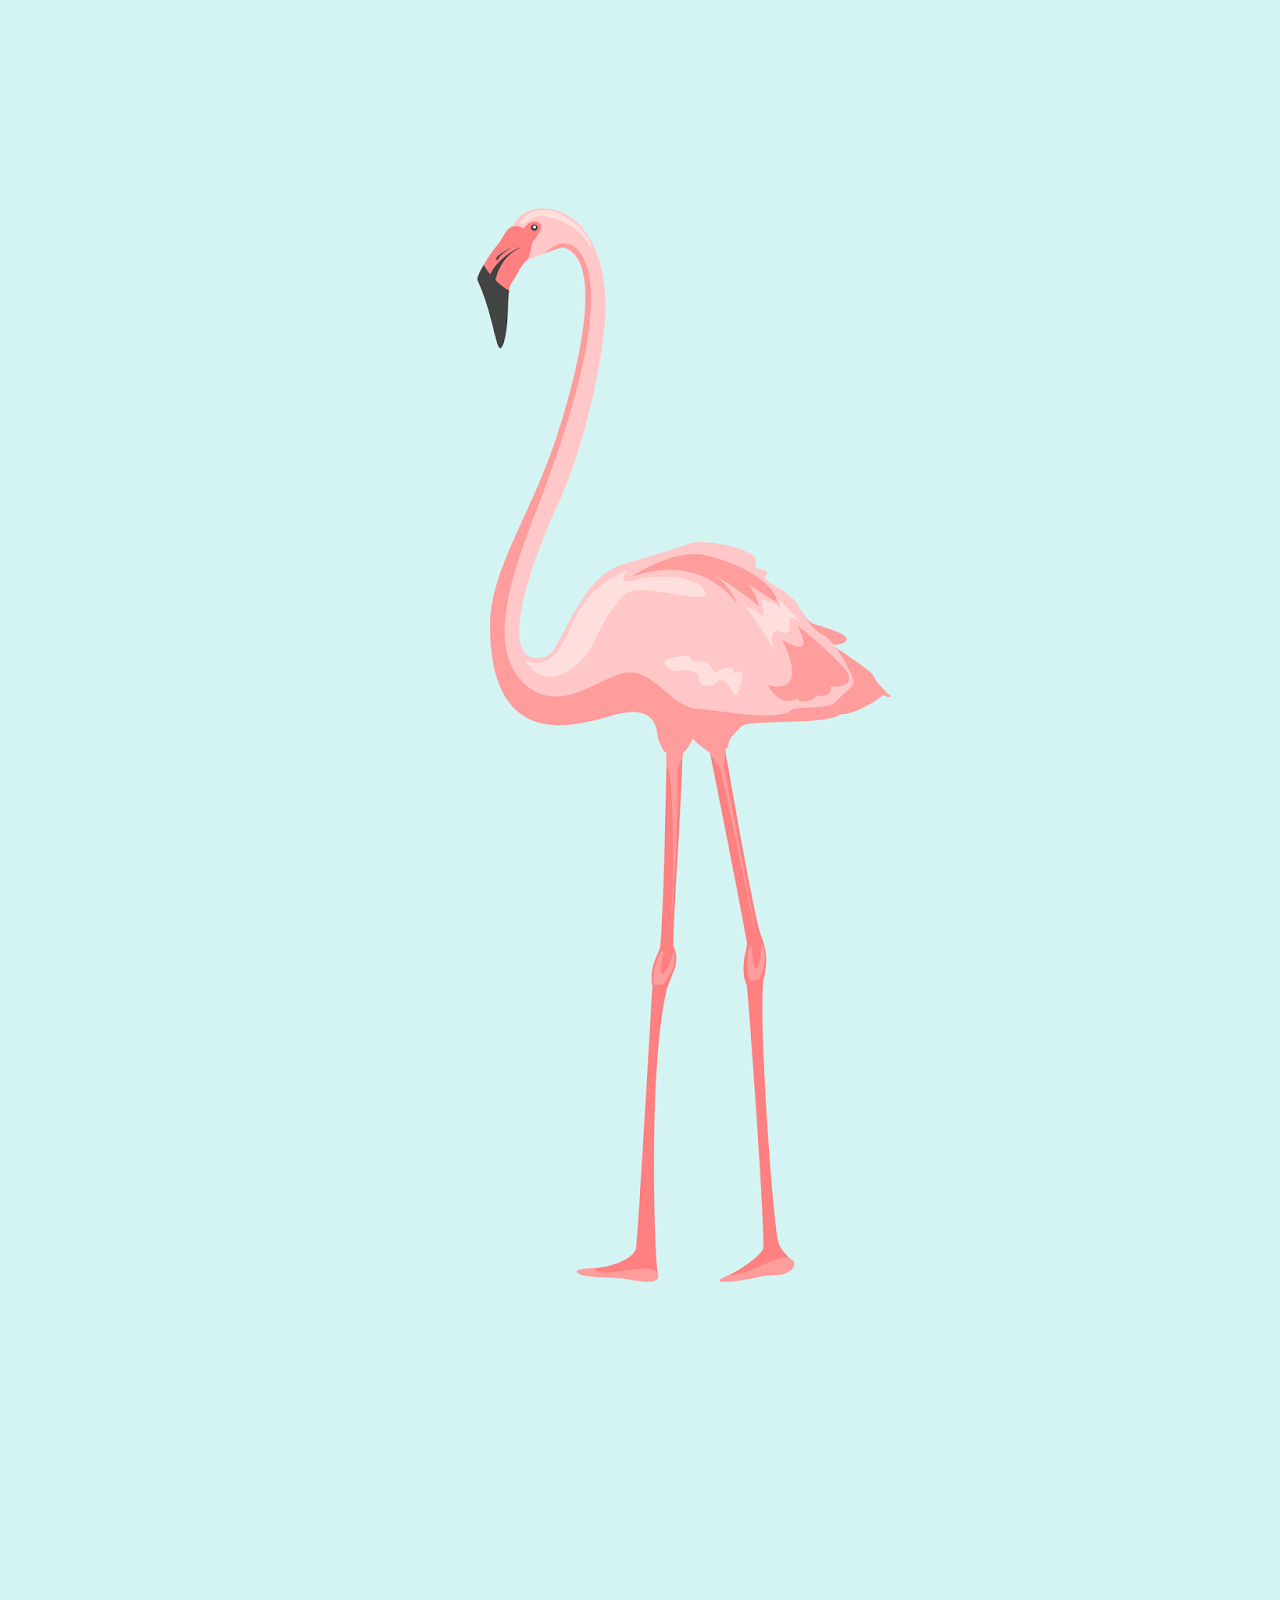 picture relating to Flamingo Printable named No cost flamingo printables lovely, exciting, and cheerful!